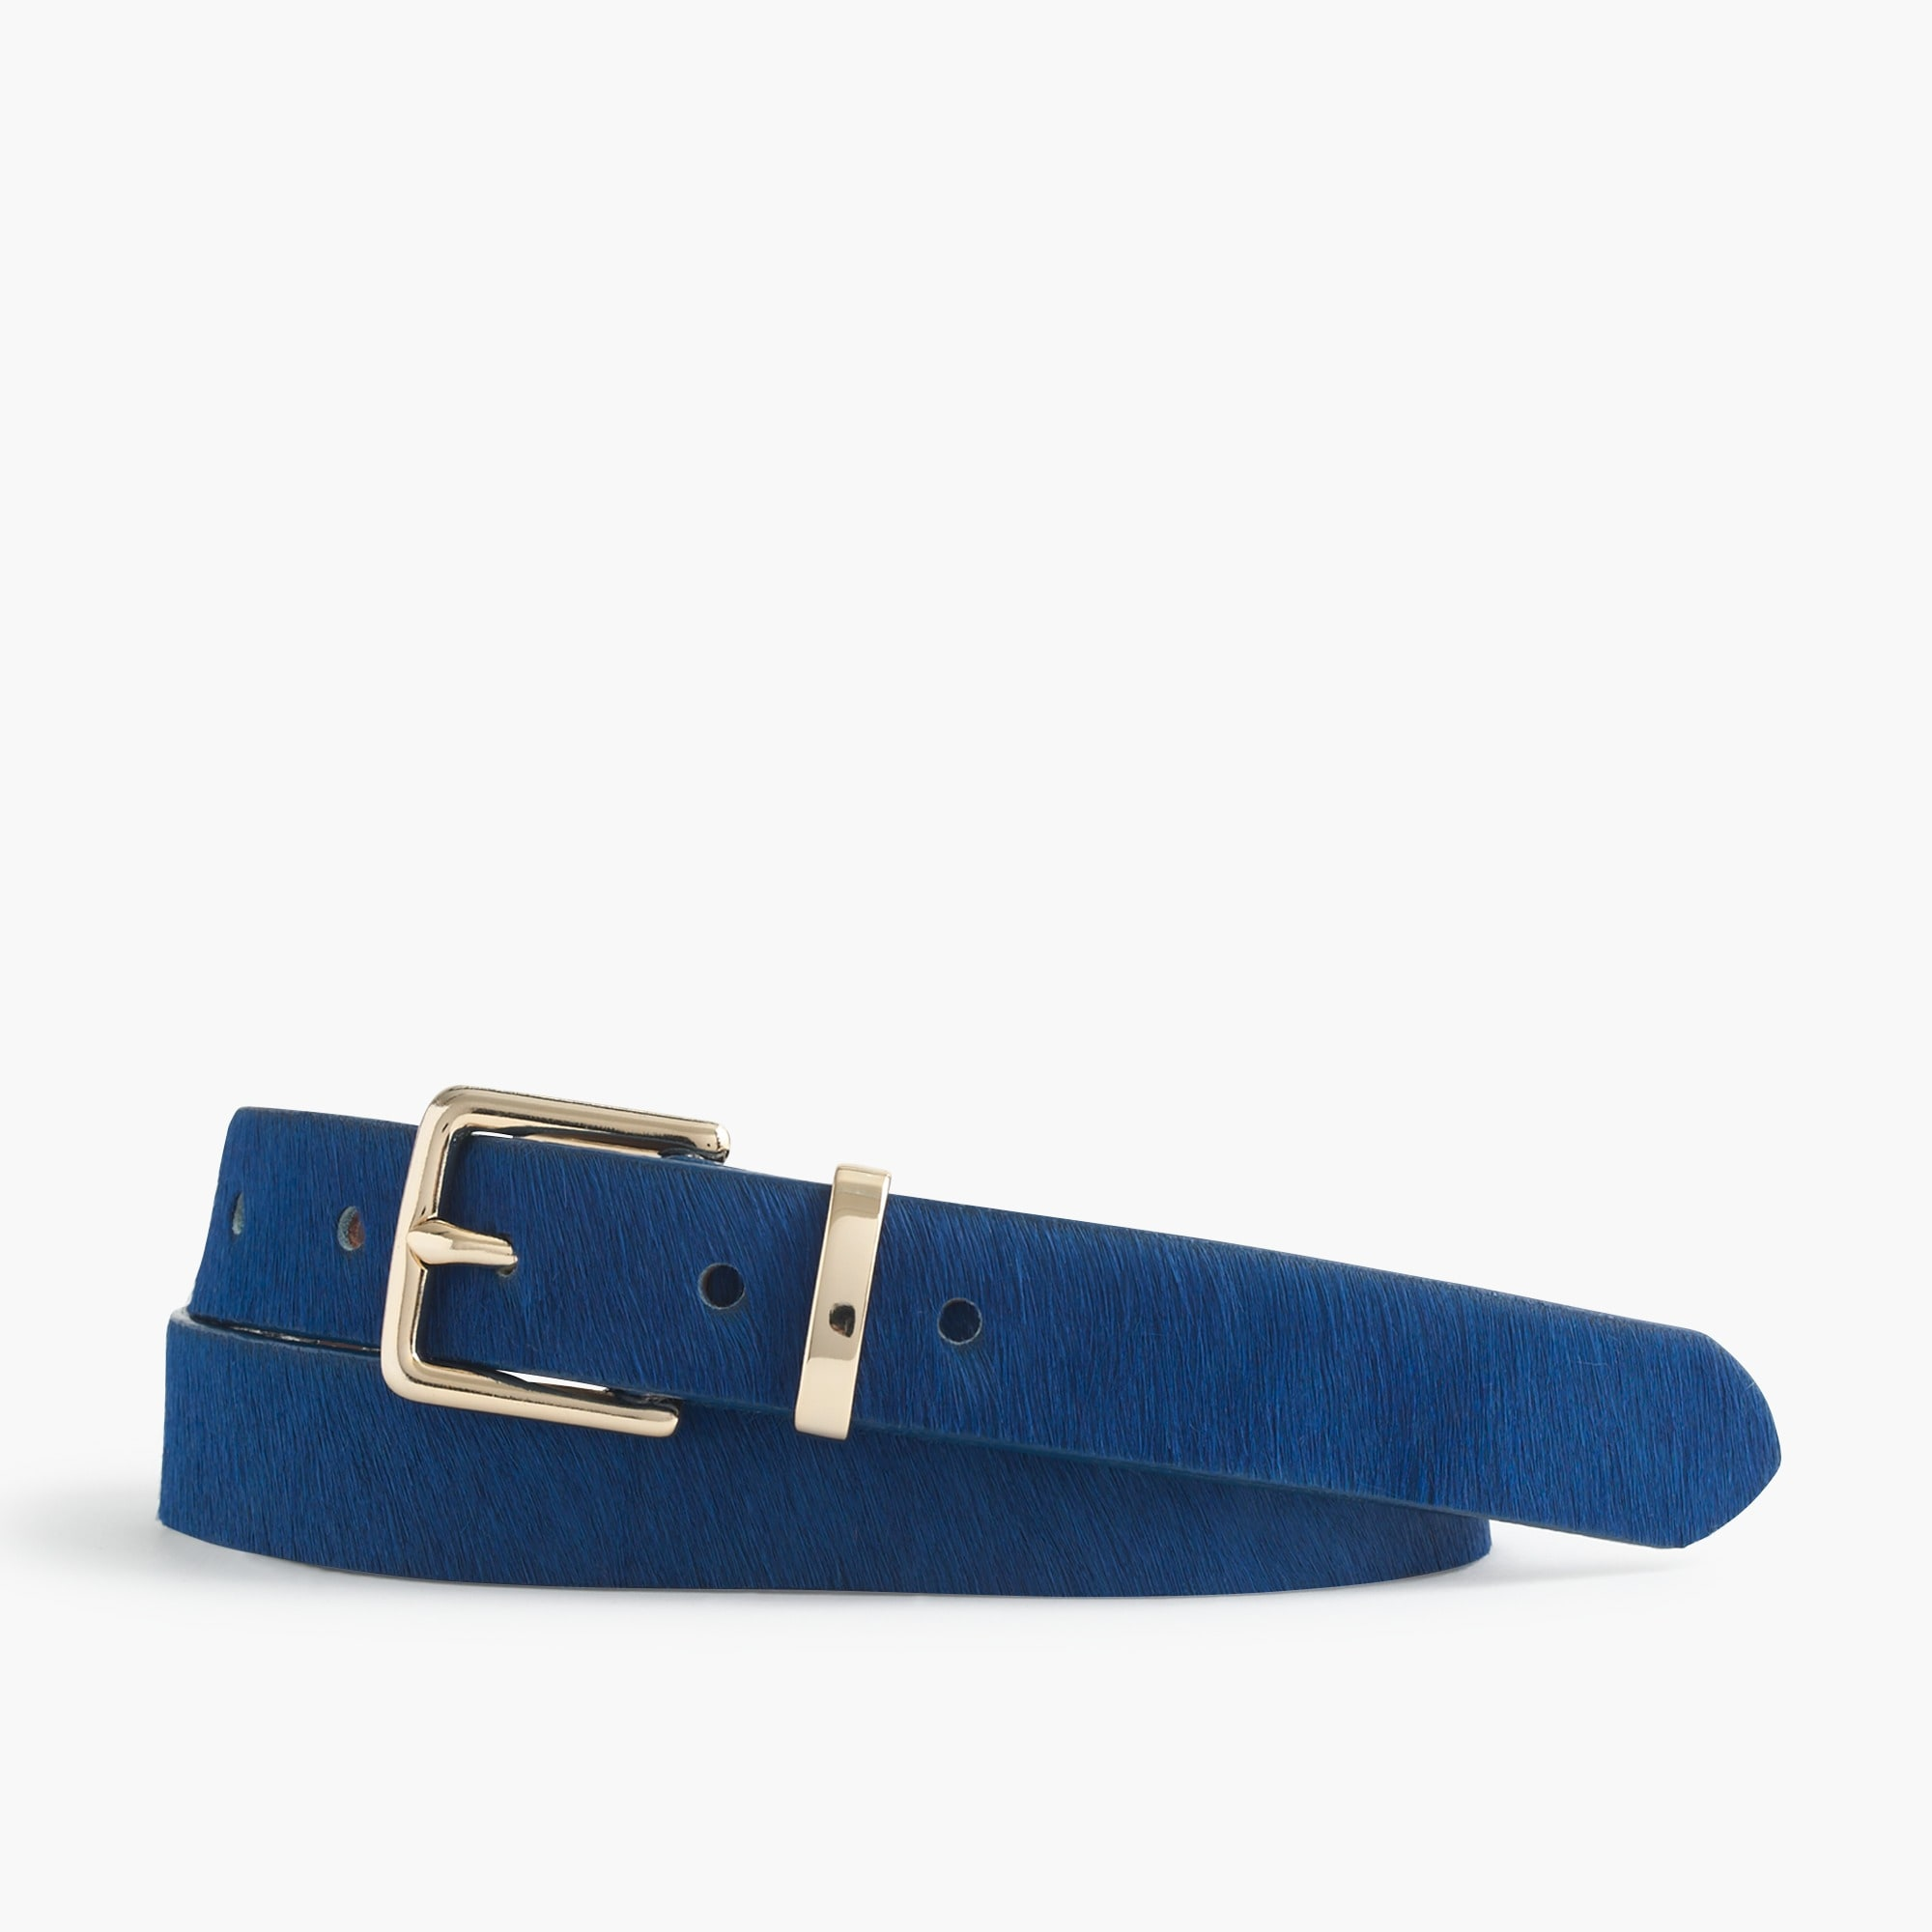 Image 1 for Bright calf hair belt